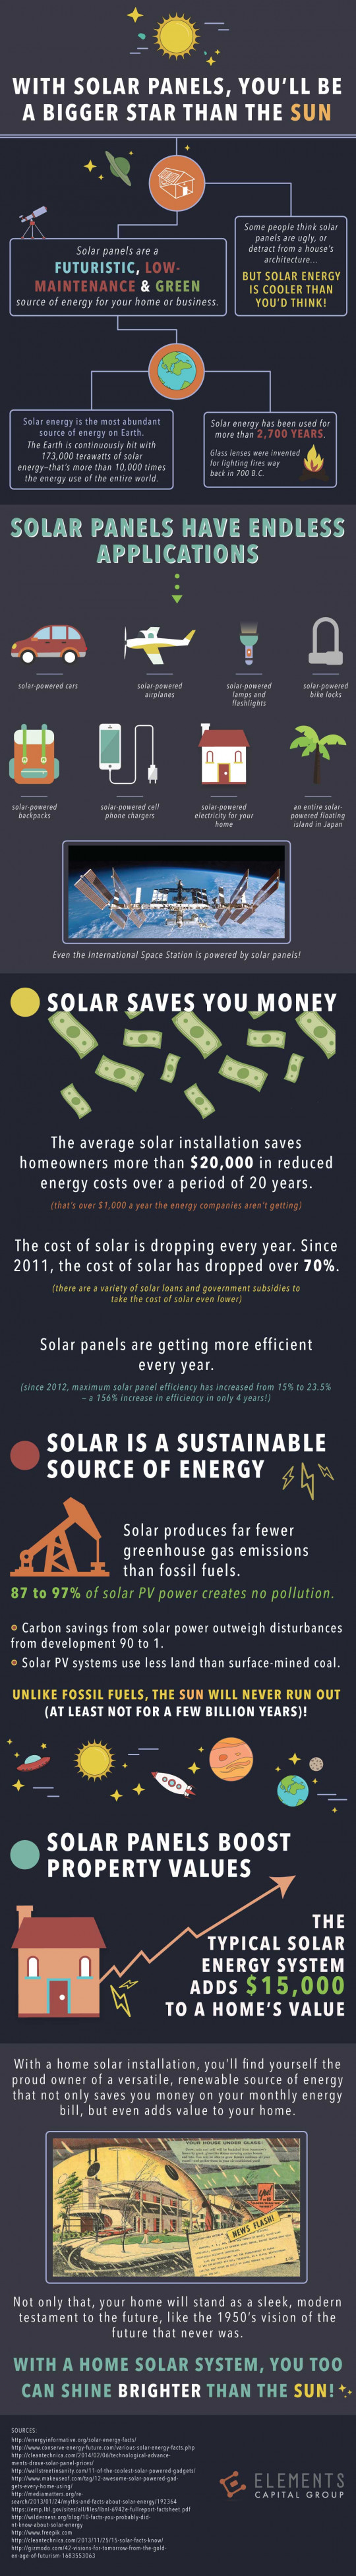 With Solar Panels, You